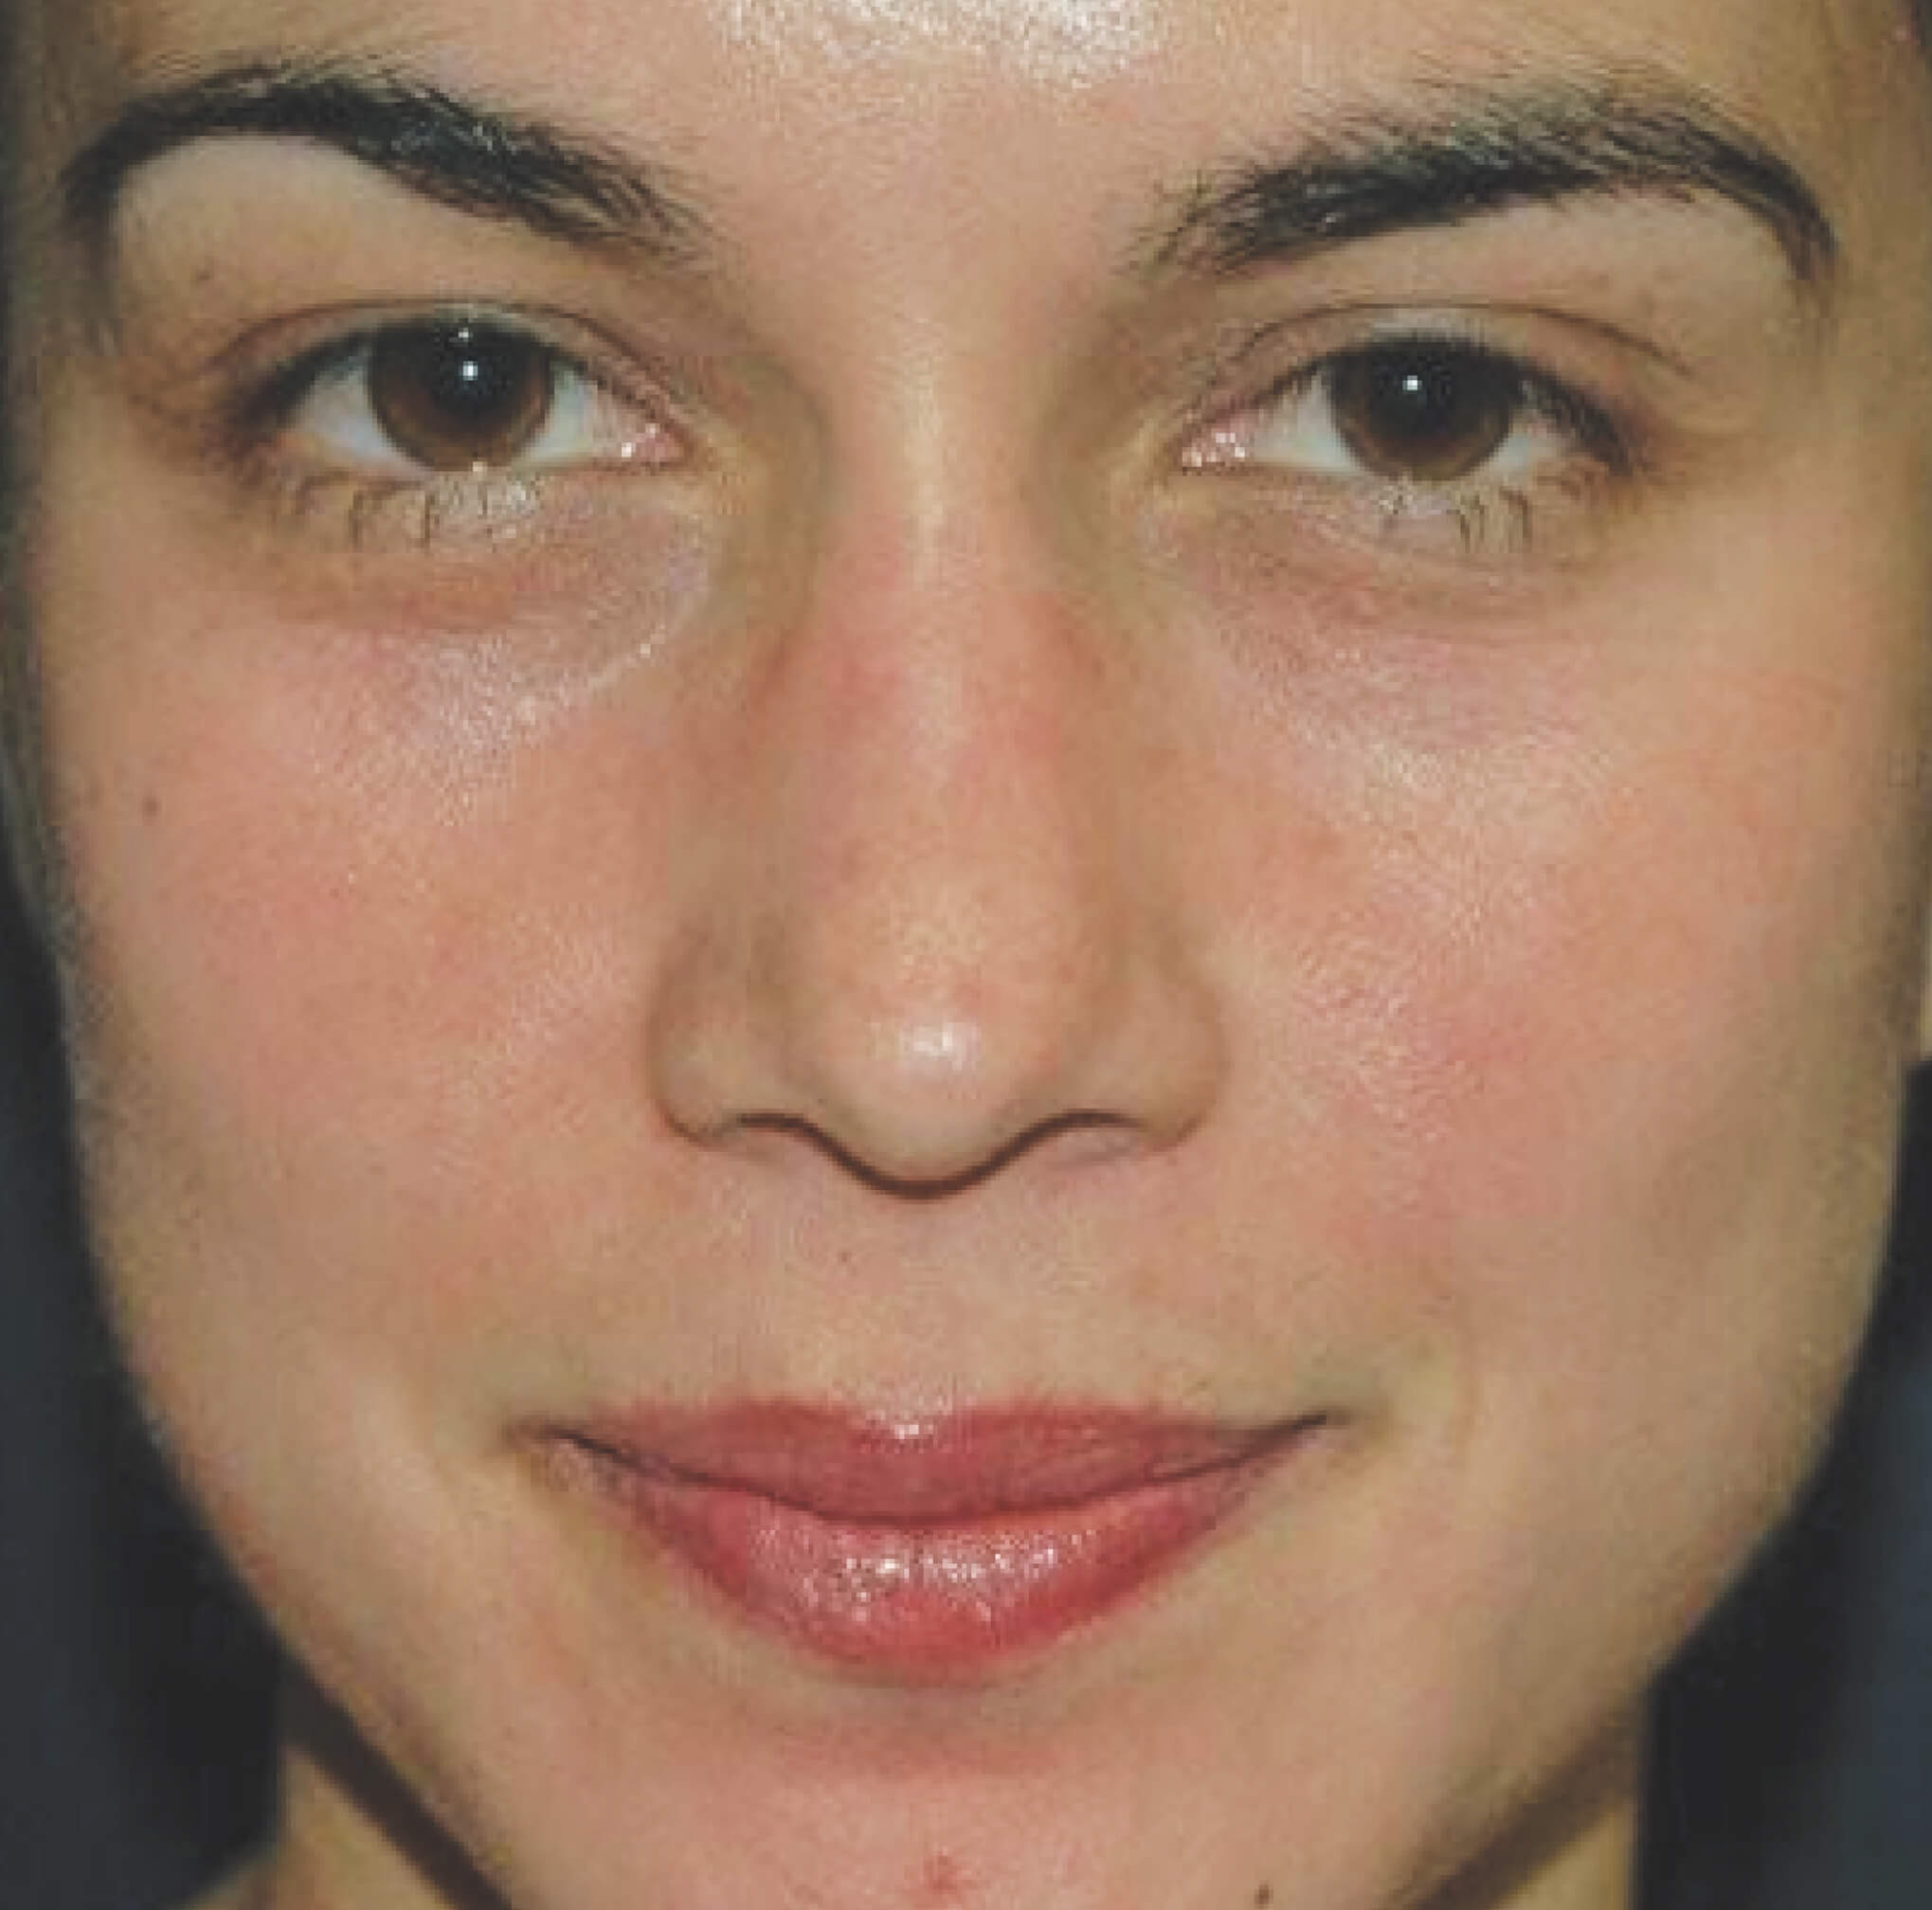 Pigmentation-Volleyball-player+copy+AFTER.jpg